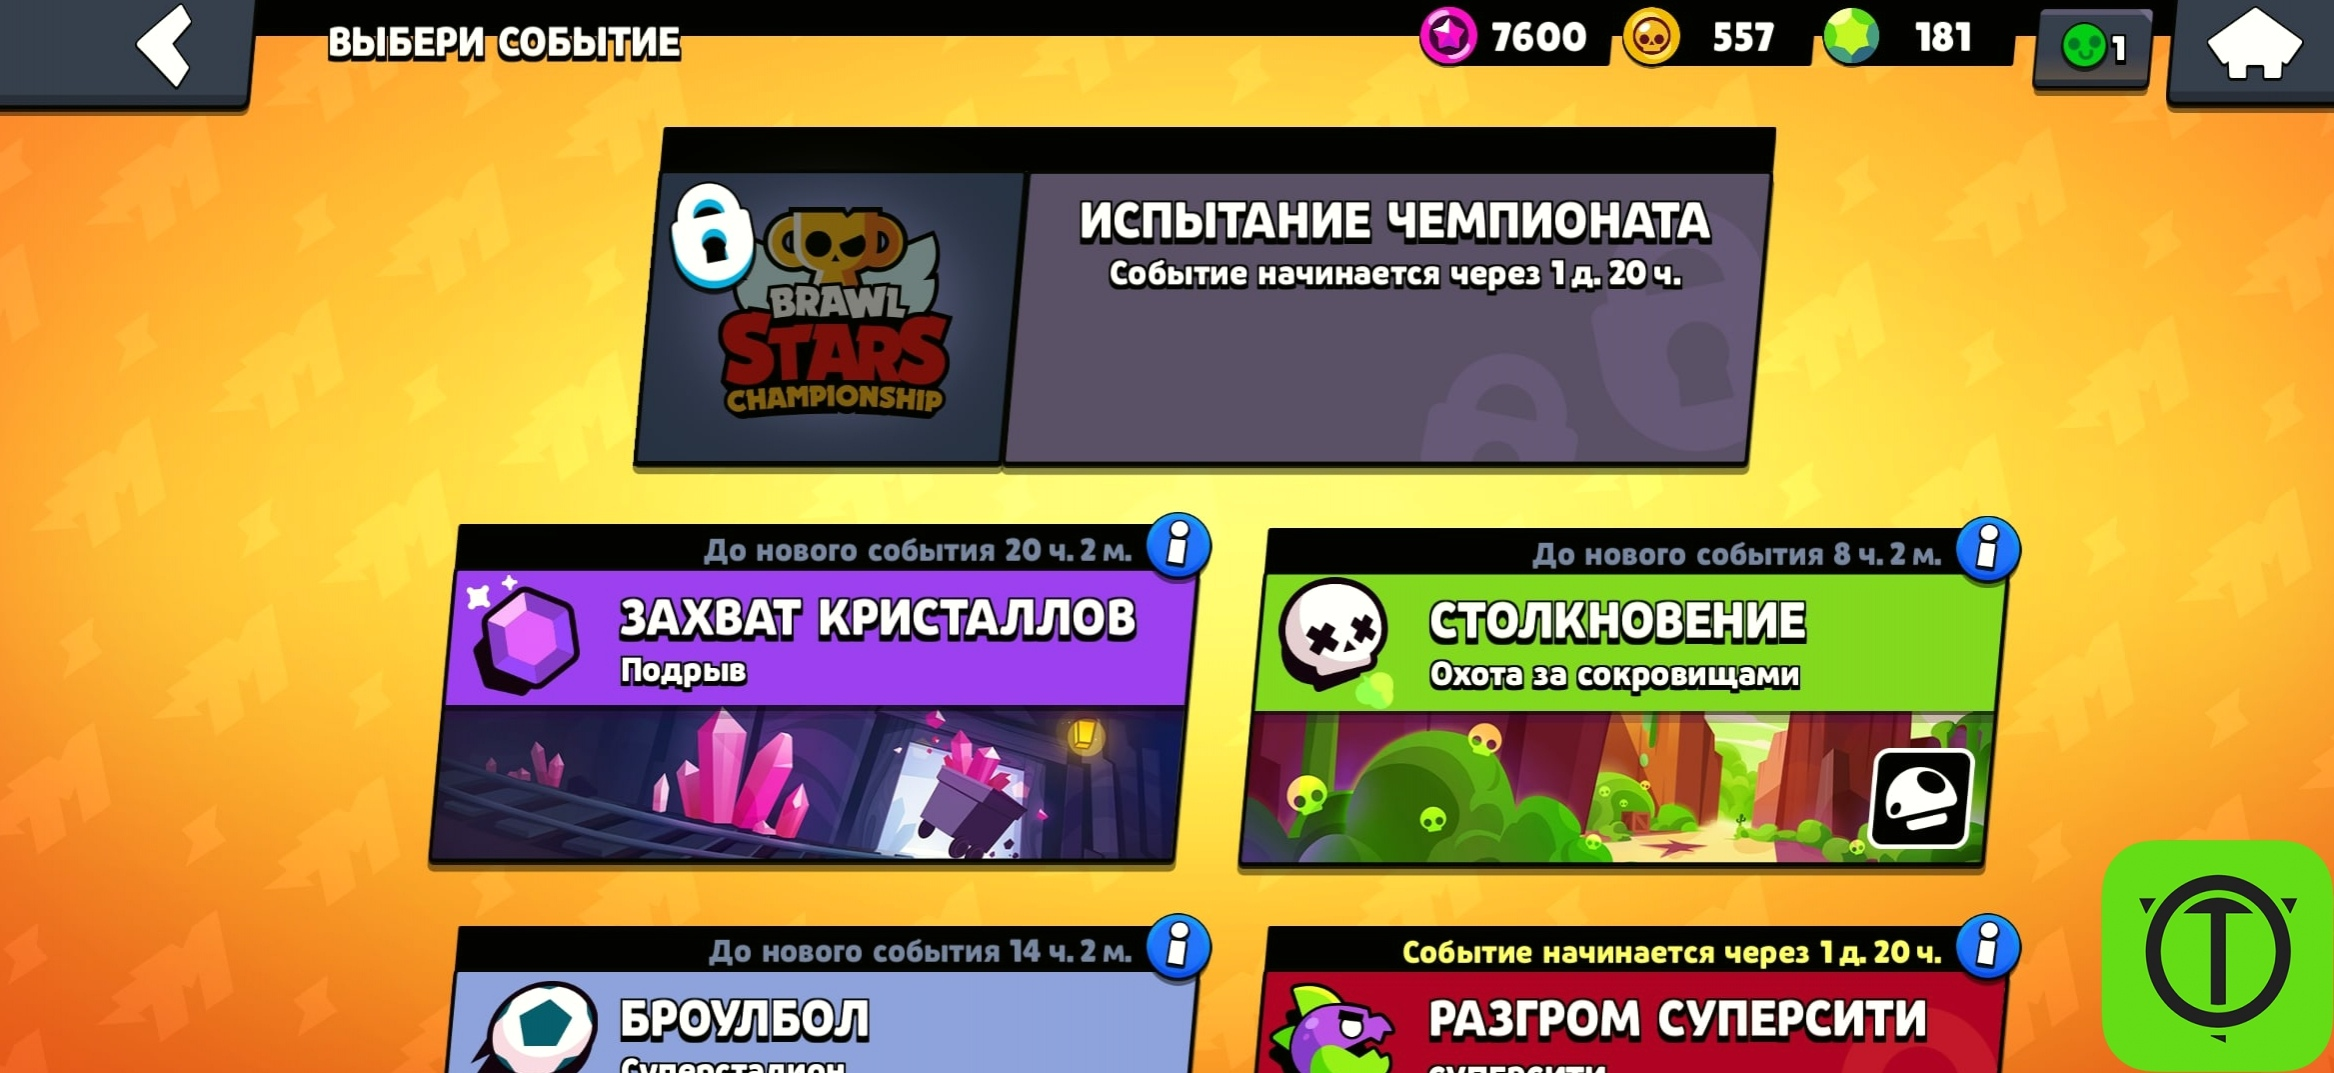 Чемпионат в Brawl Stars! #bs_news@opegitstudio